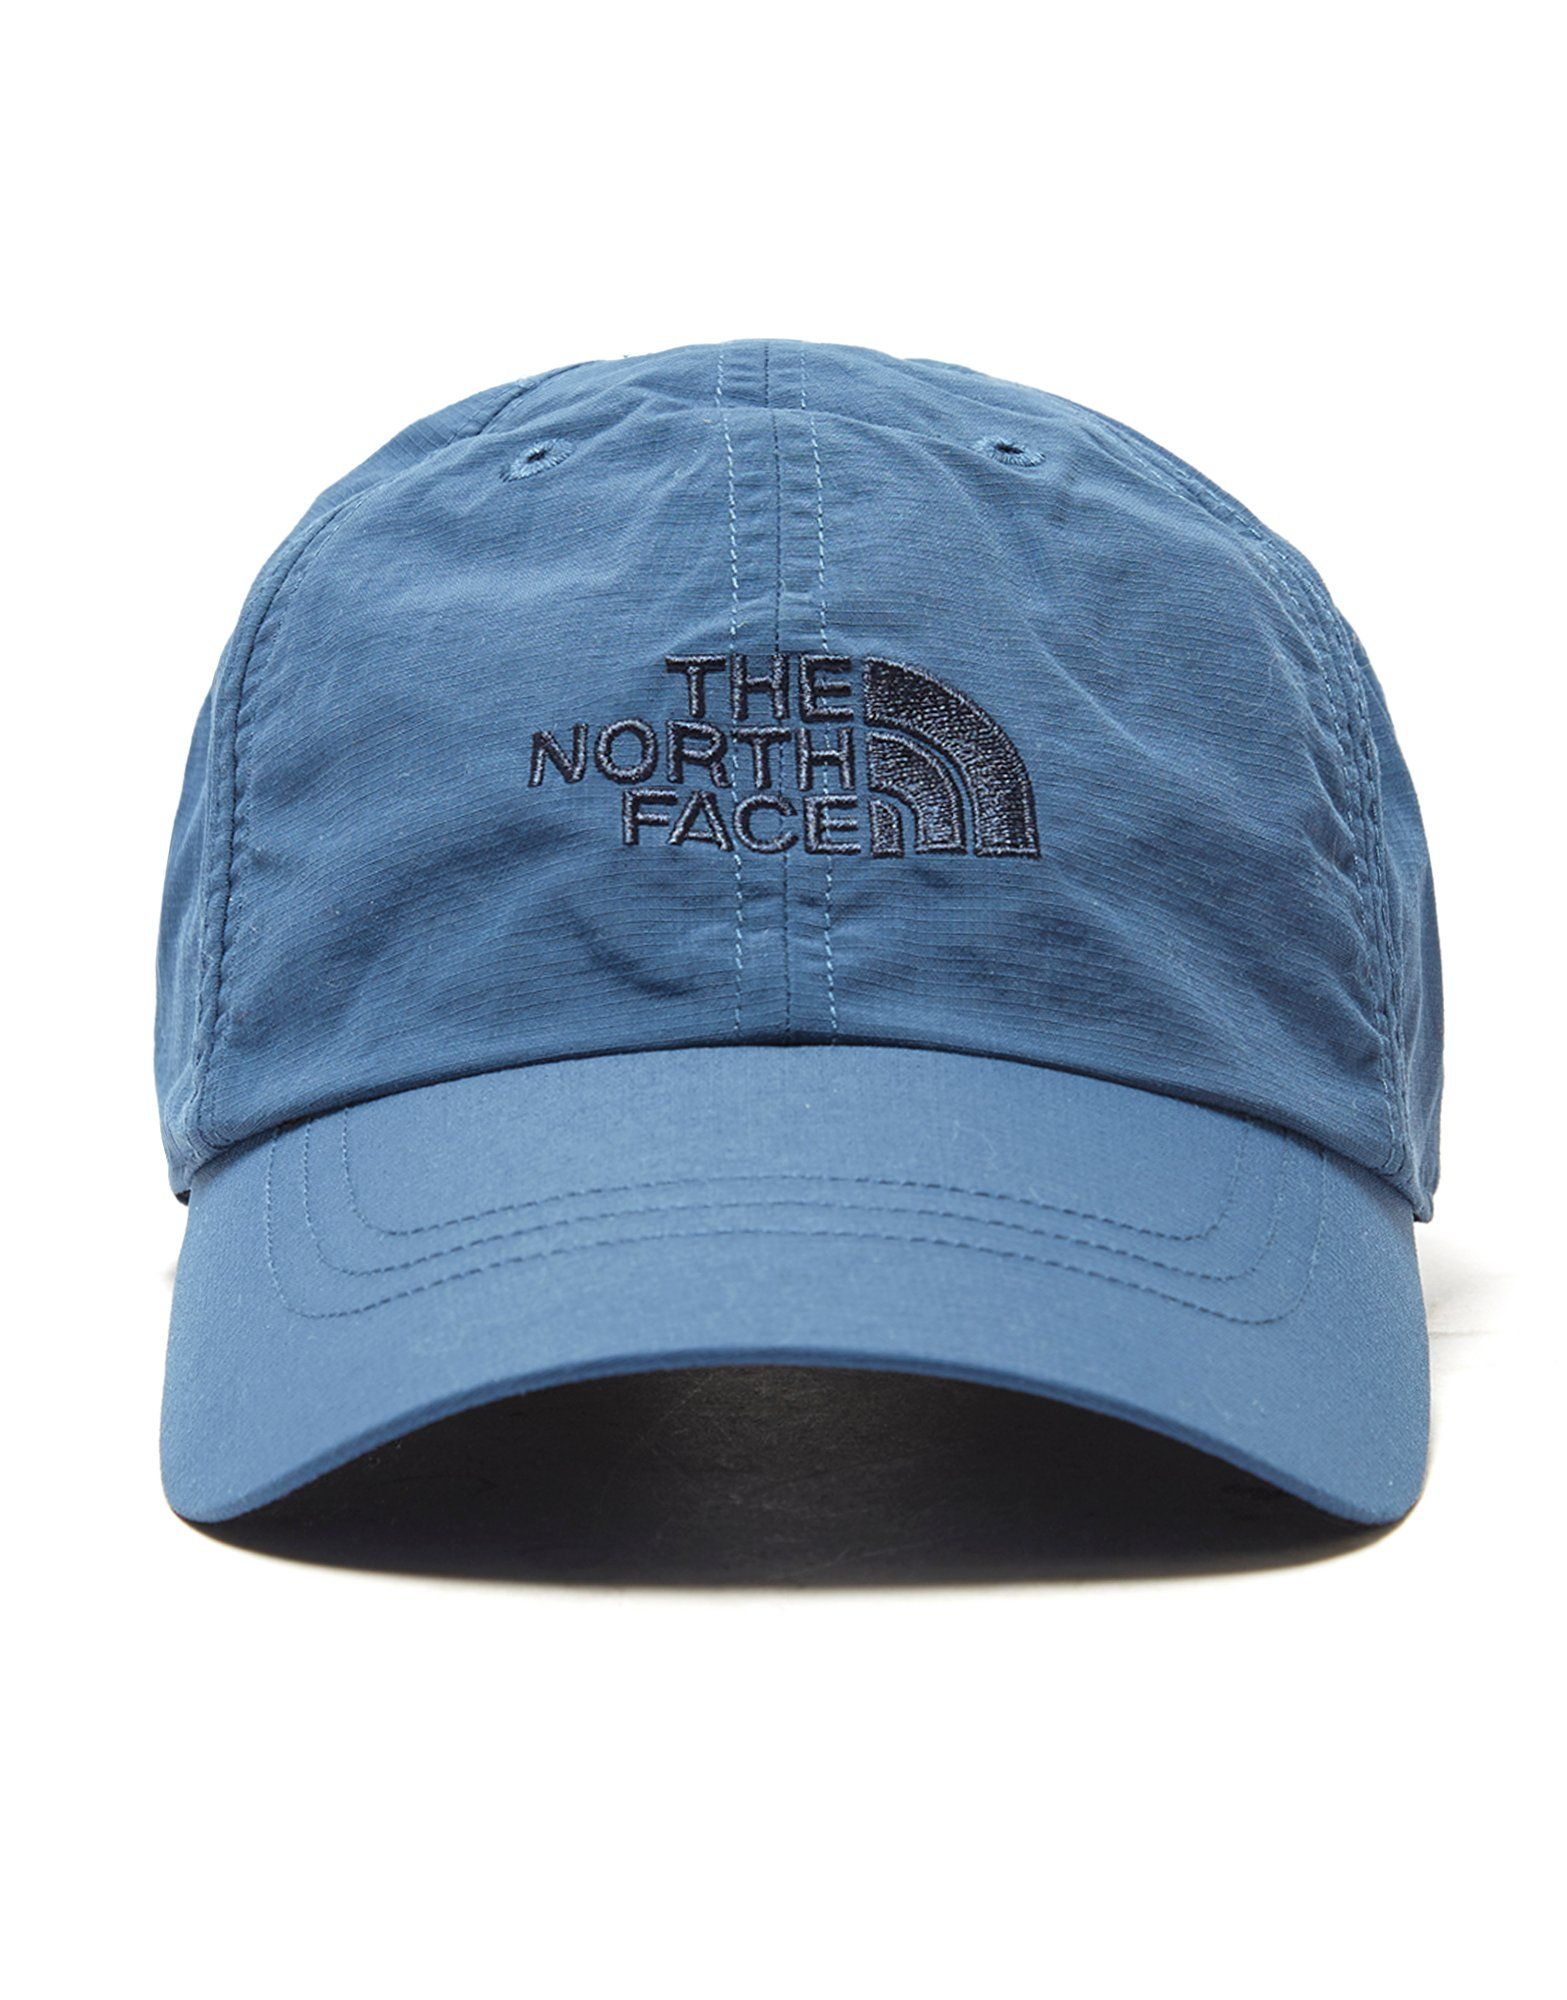 The North Face Gorra Horizon